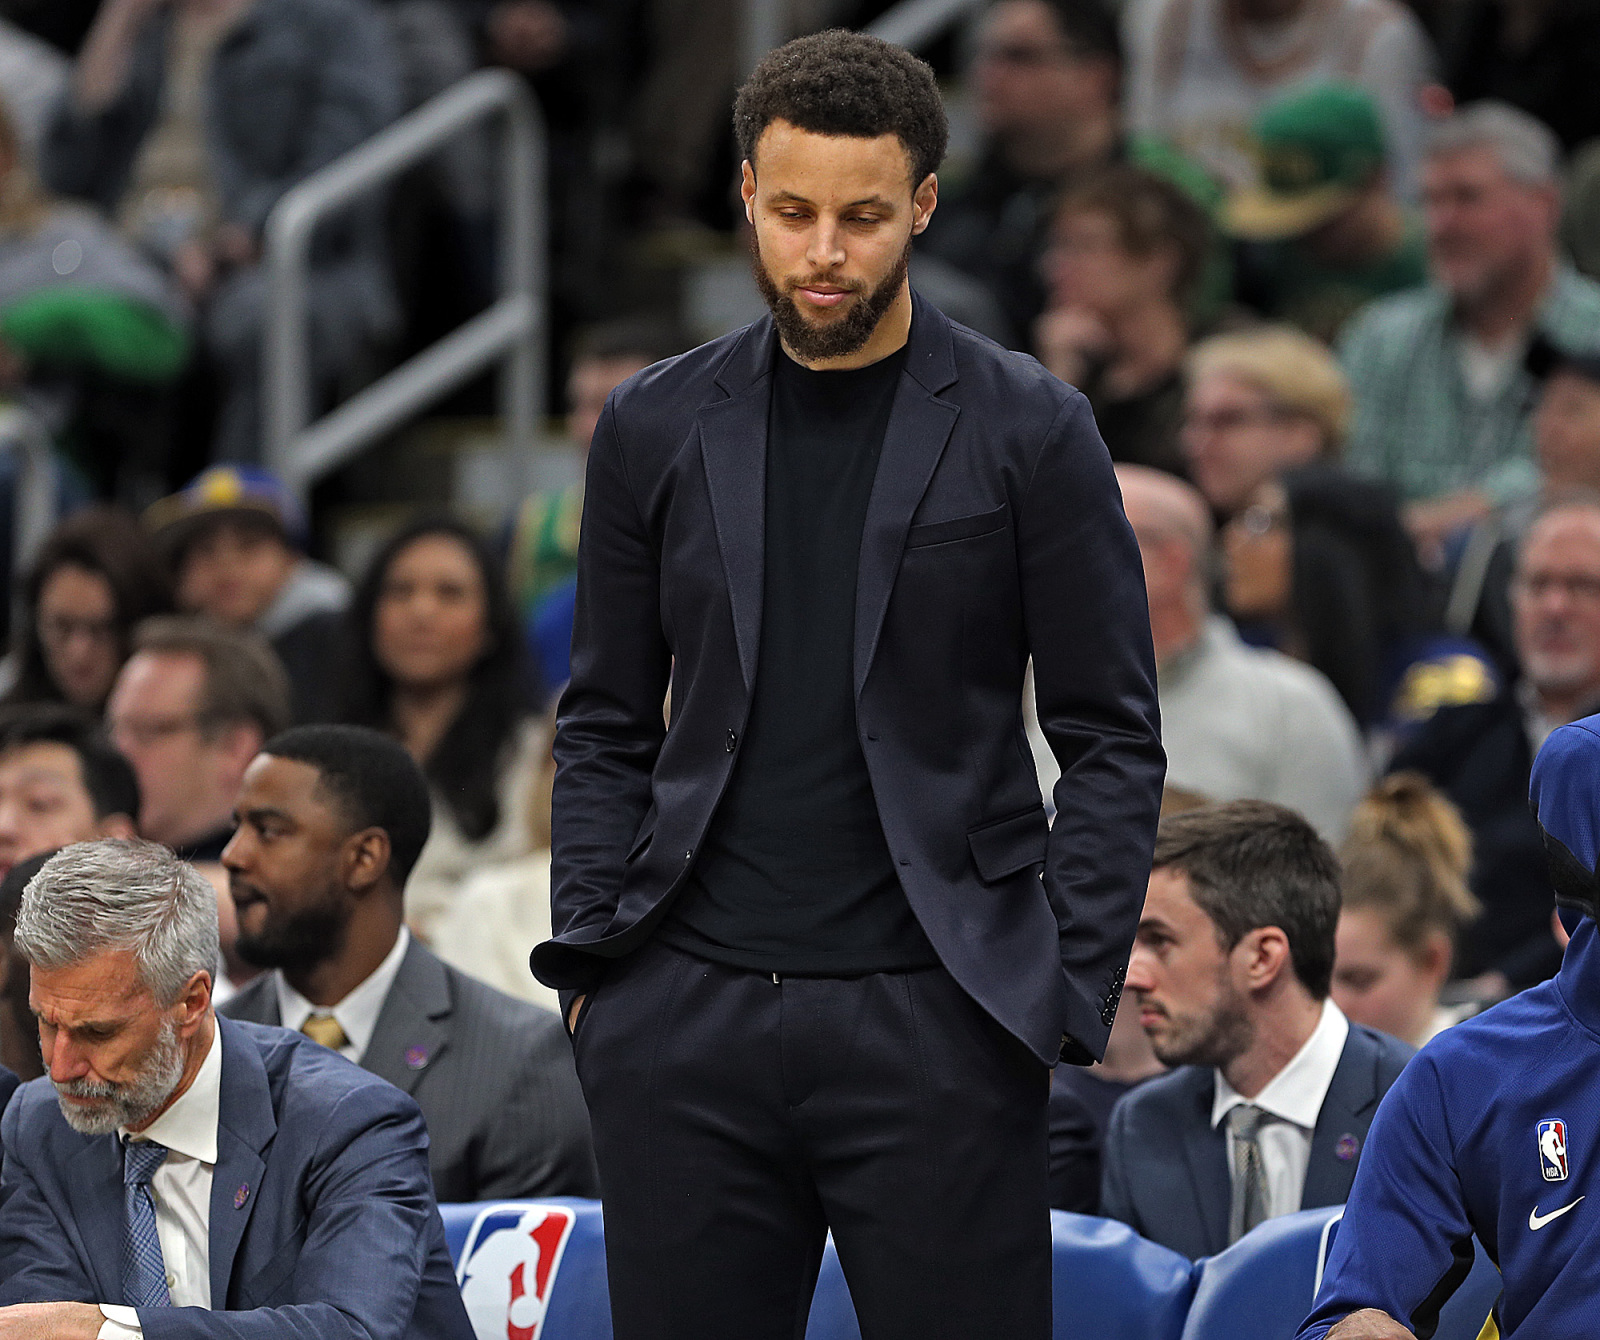 Golden State Warriors: Stephen Curry's desire to return is encouraging